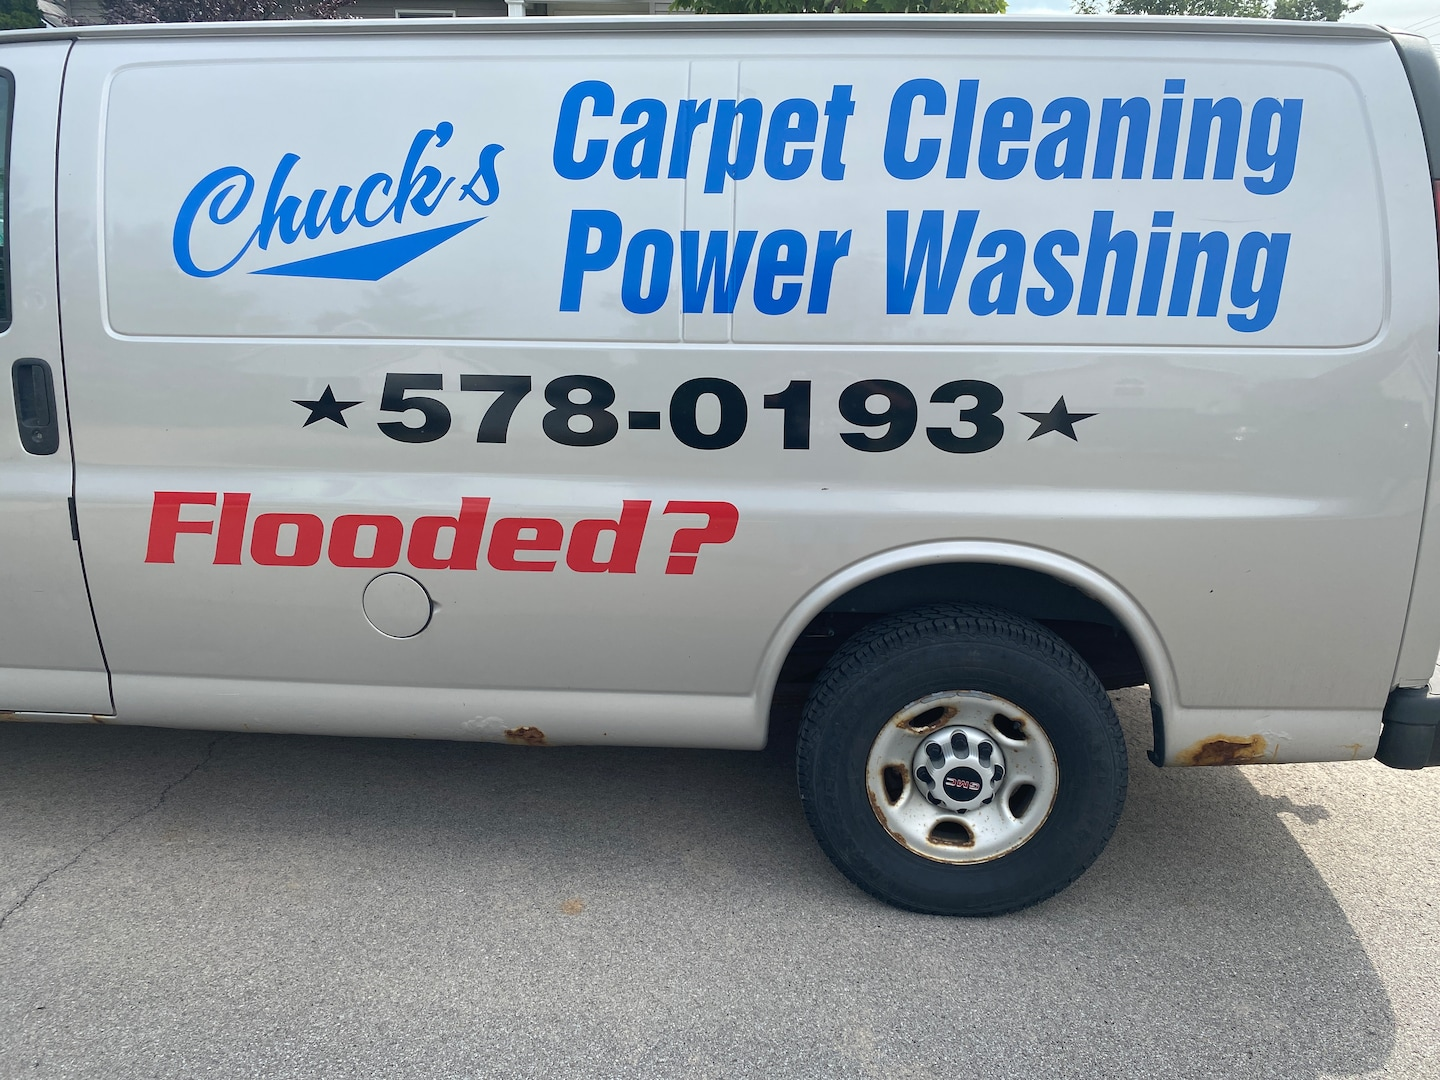 Chuck's Powerwashing and Flood Relief